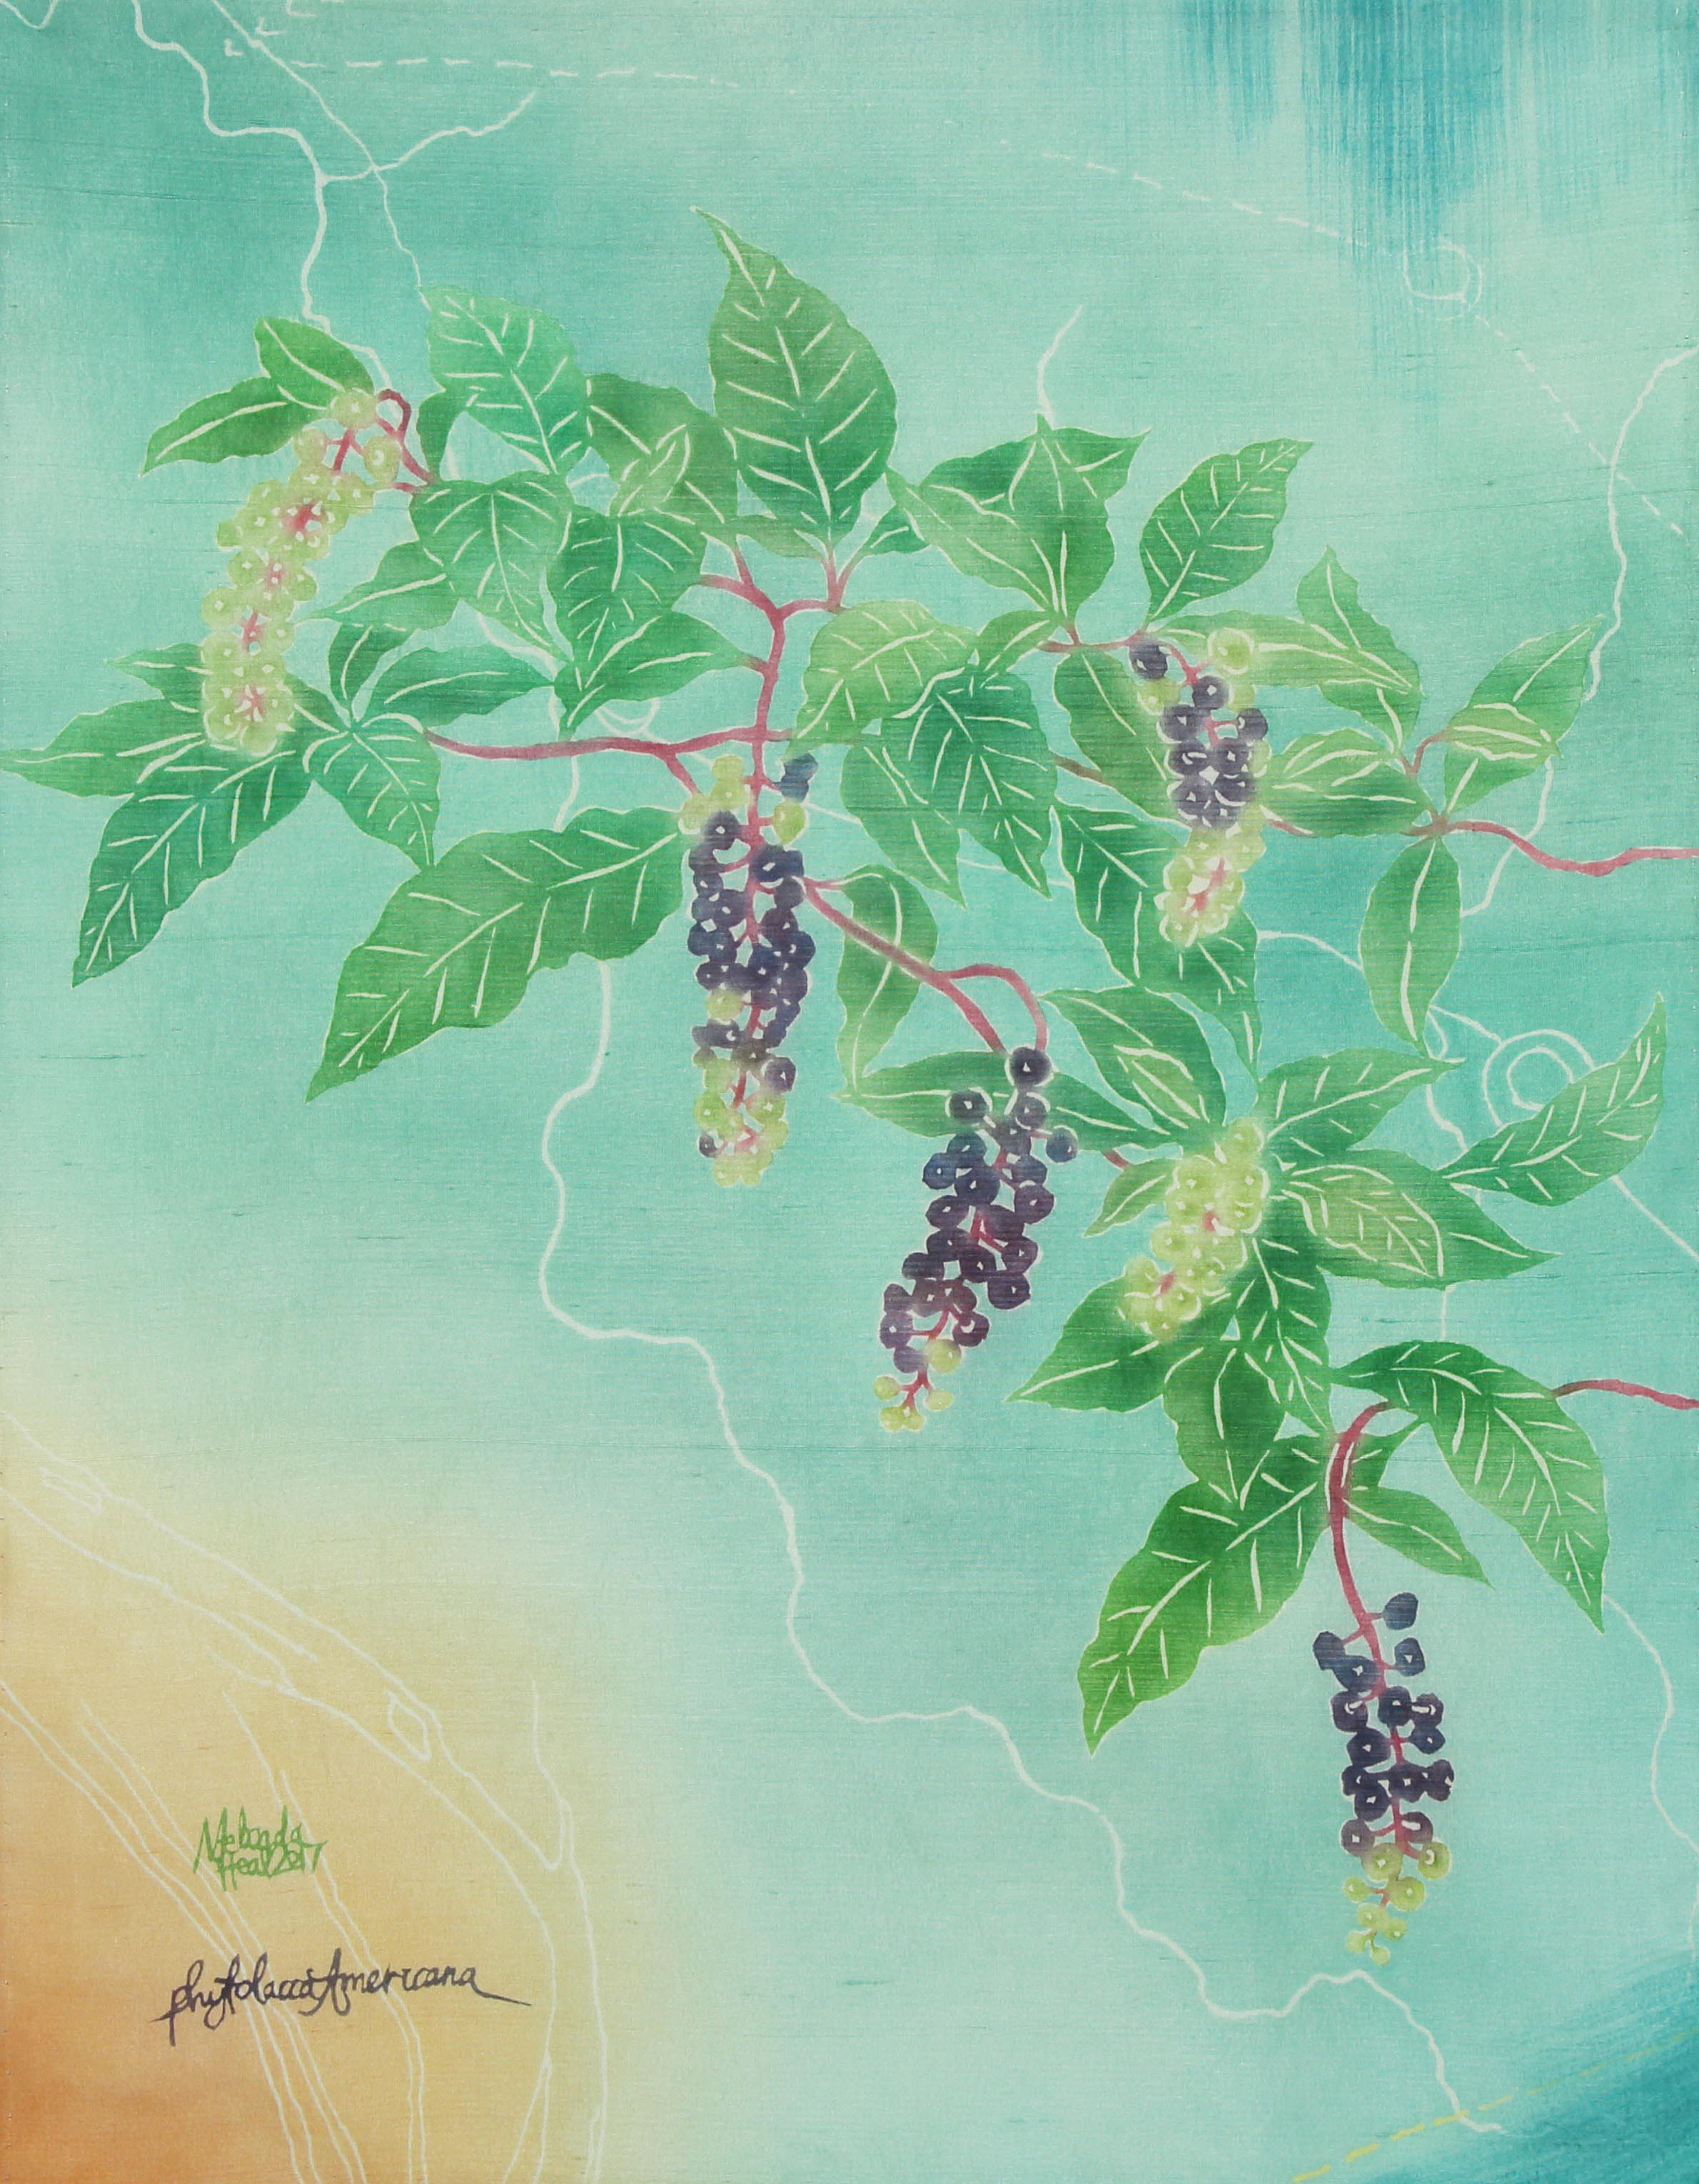 Pokeweed - My Weeds are Your Weeds Series - katazome and yuzen on silk dupion, 2017